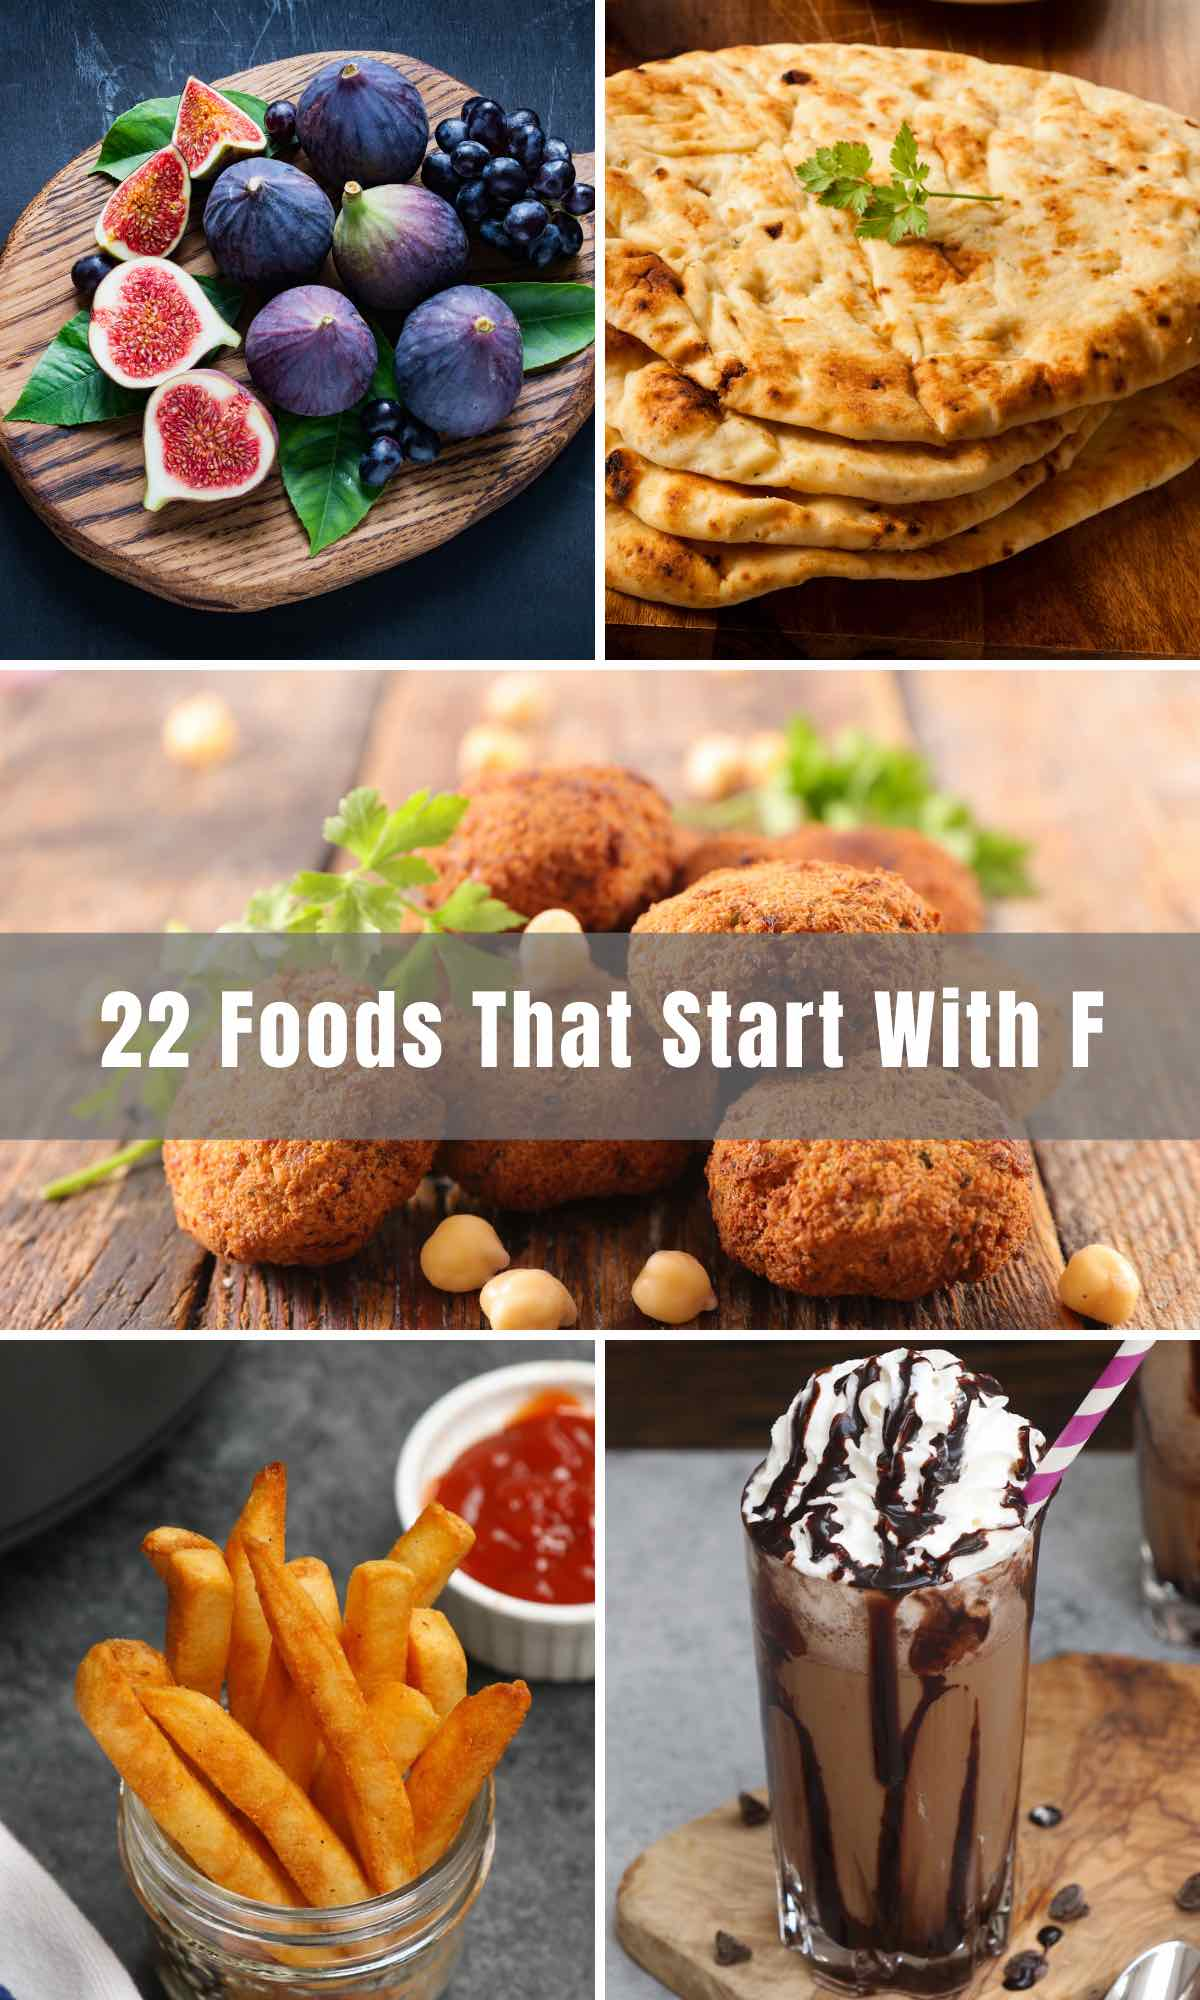 """Before we get to foods that start with the letter """"F"""", let's take a second to think of other words that are connected to food - favorite, favor, fantastic, flavorful, fabulous, famous, fantastic, fancy, fascinating, and fresh! With that enjoy the list below of foods that start with the letter """"F""""."""